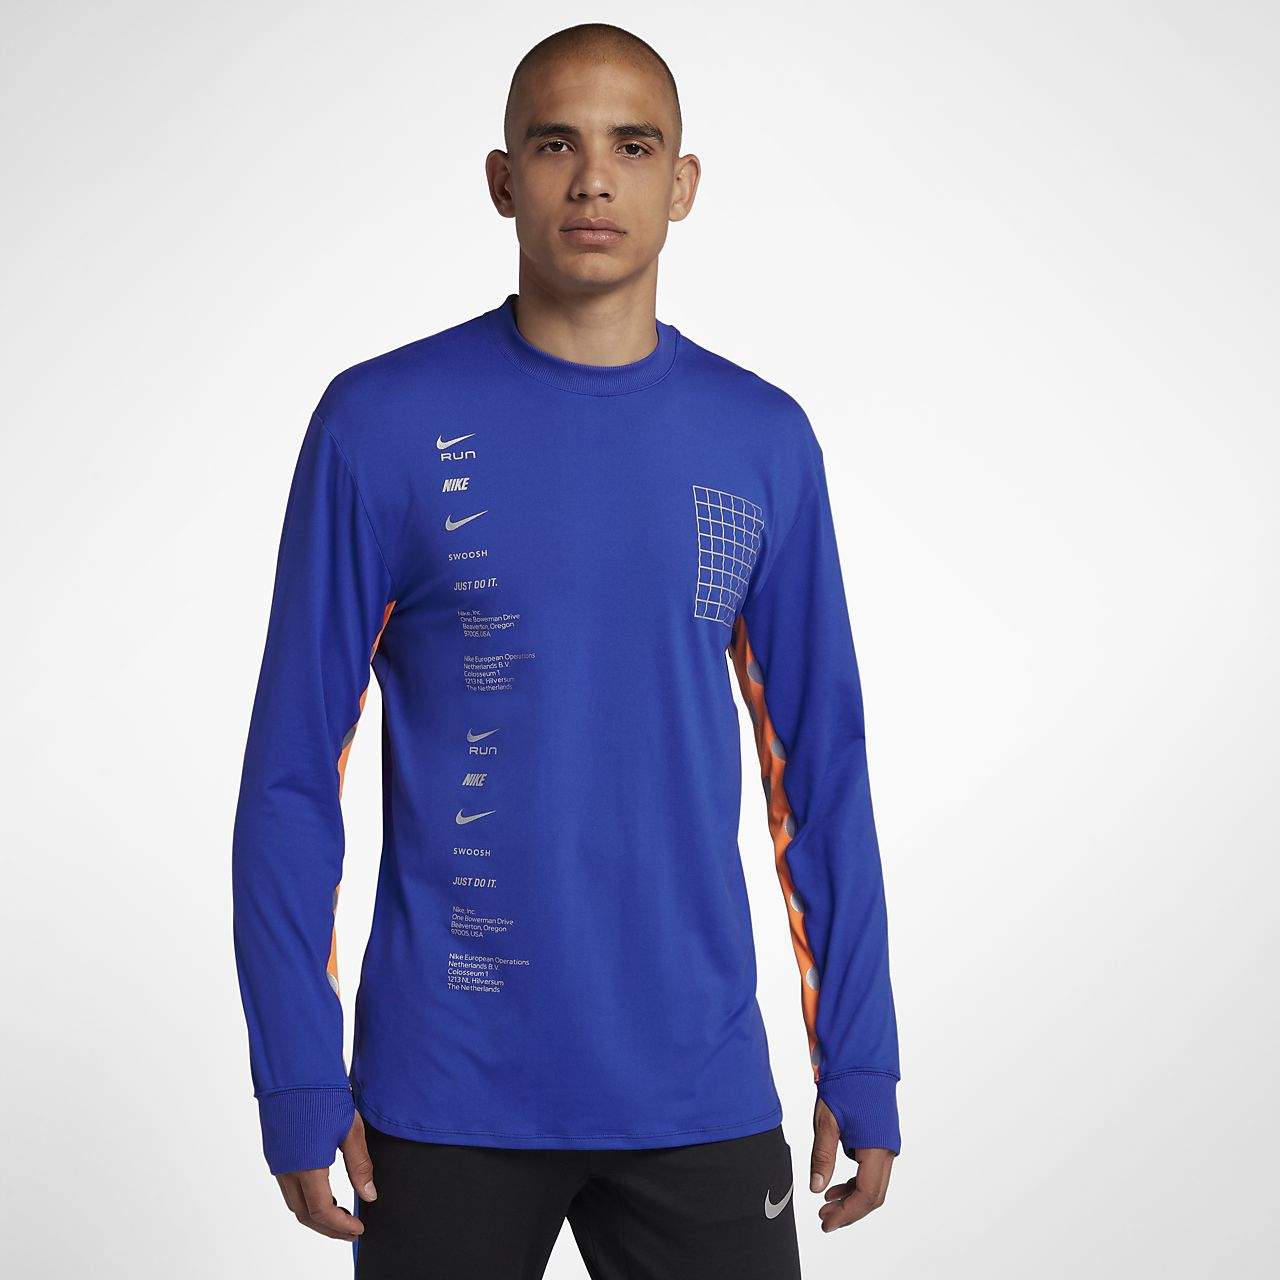 Nike Dri-FIT Men's Long-Sleeve Running Top